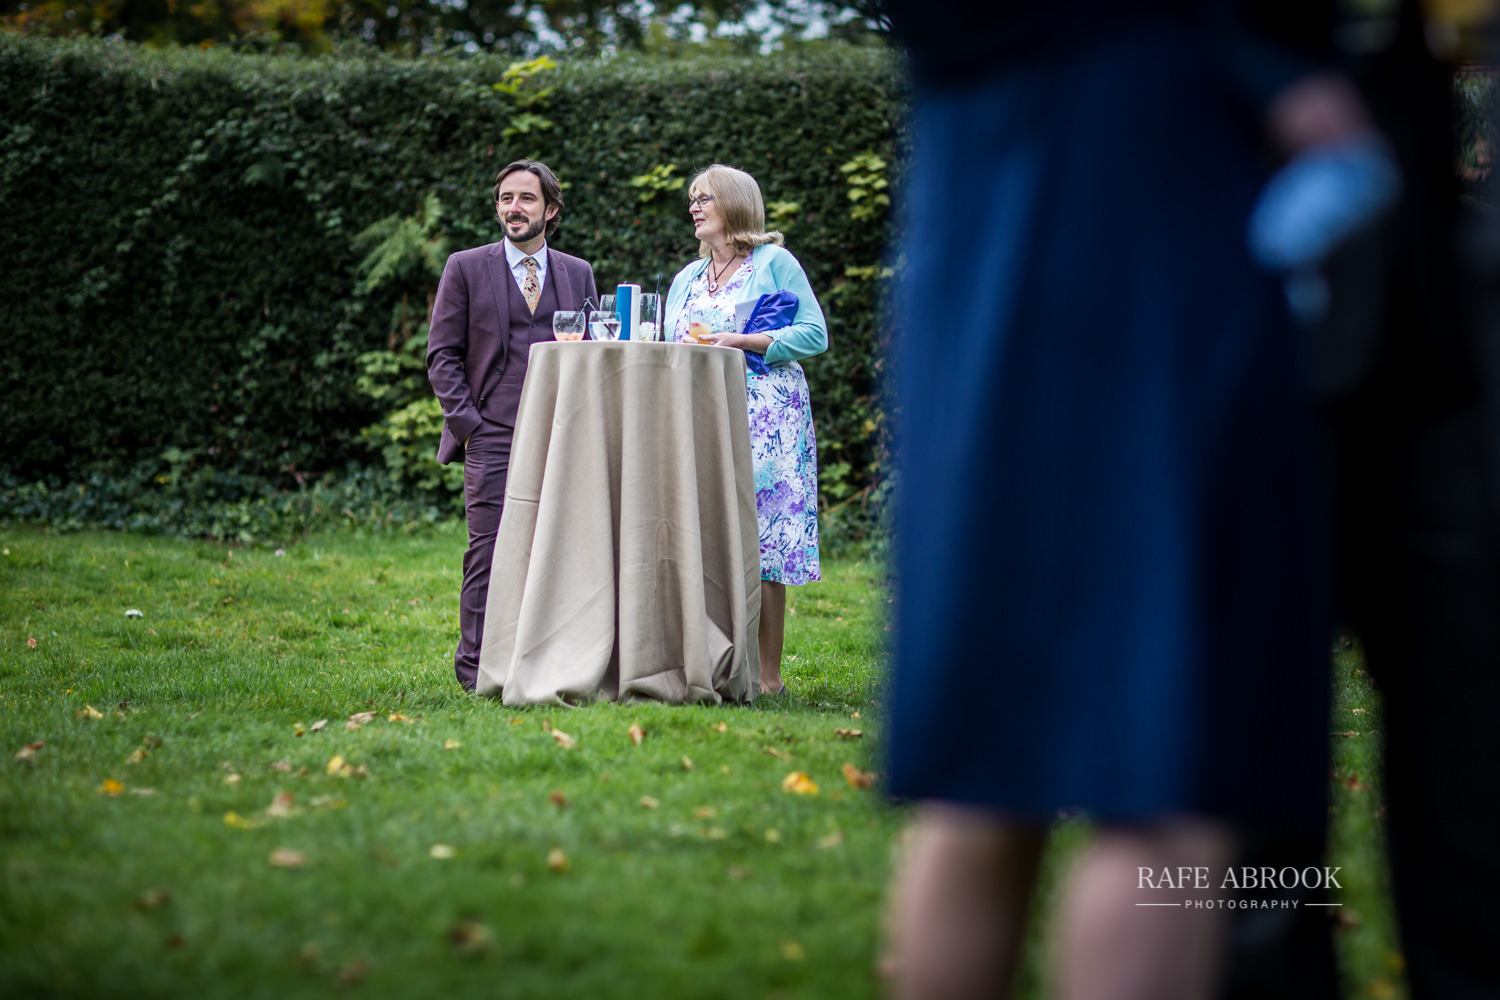 thursley village hall guildford surrey wedding hertfordshire wedding photographer-1265.jpg